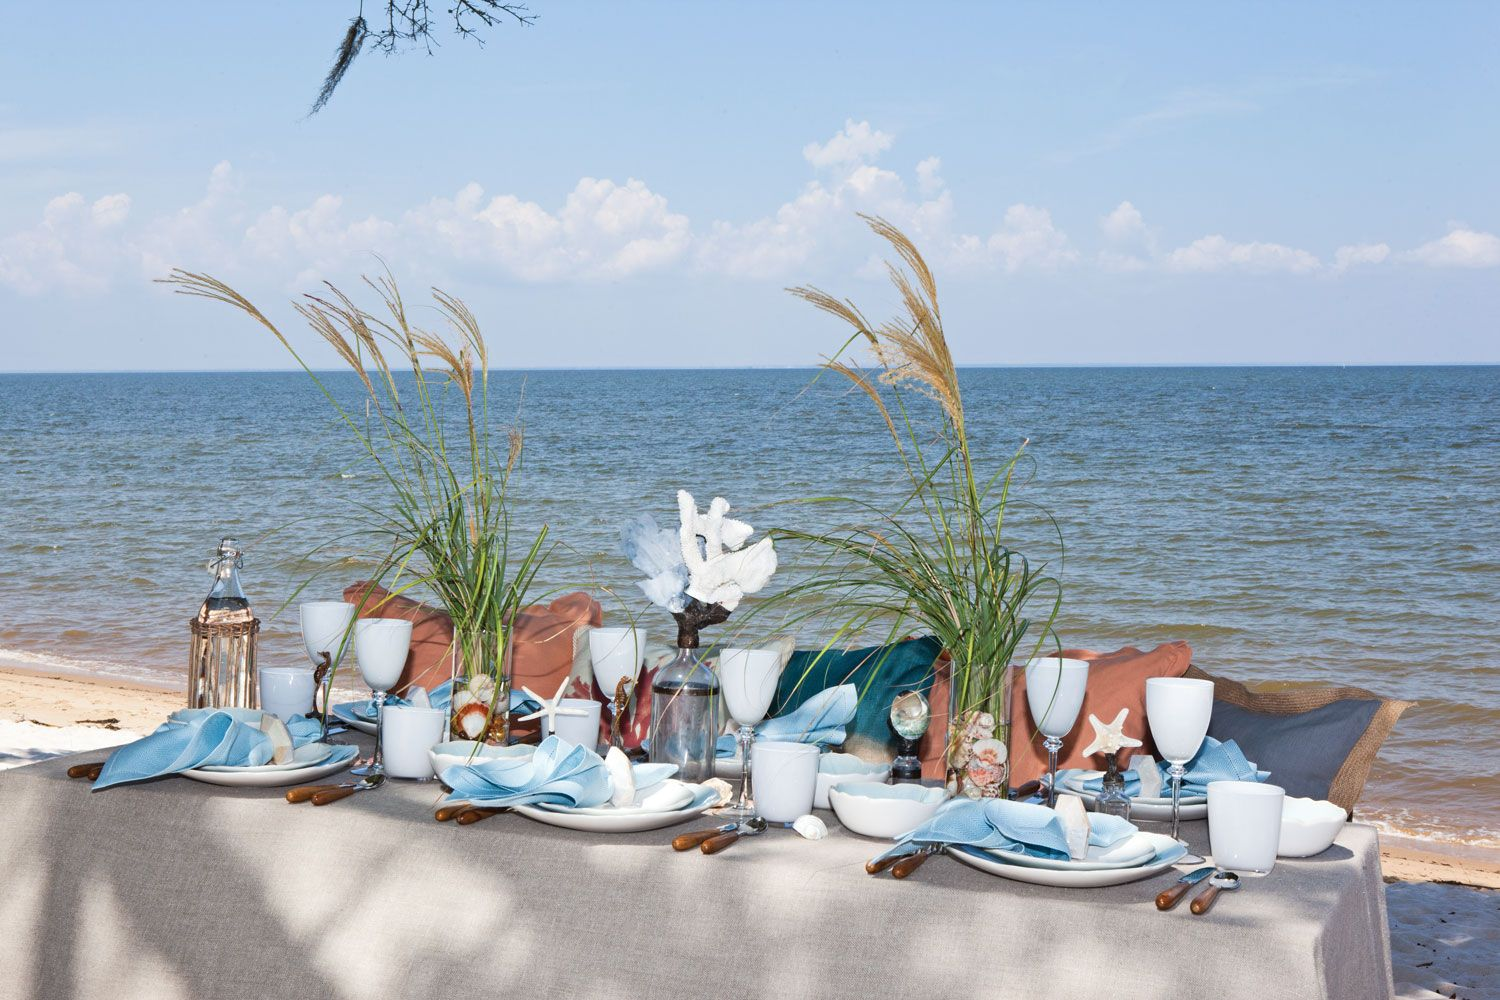 Tablescapes Inspired by the Sea